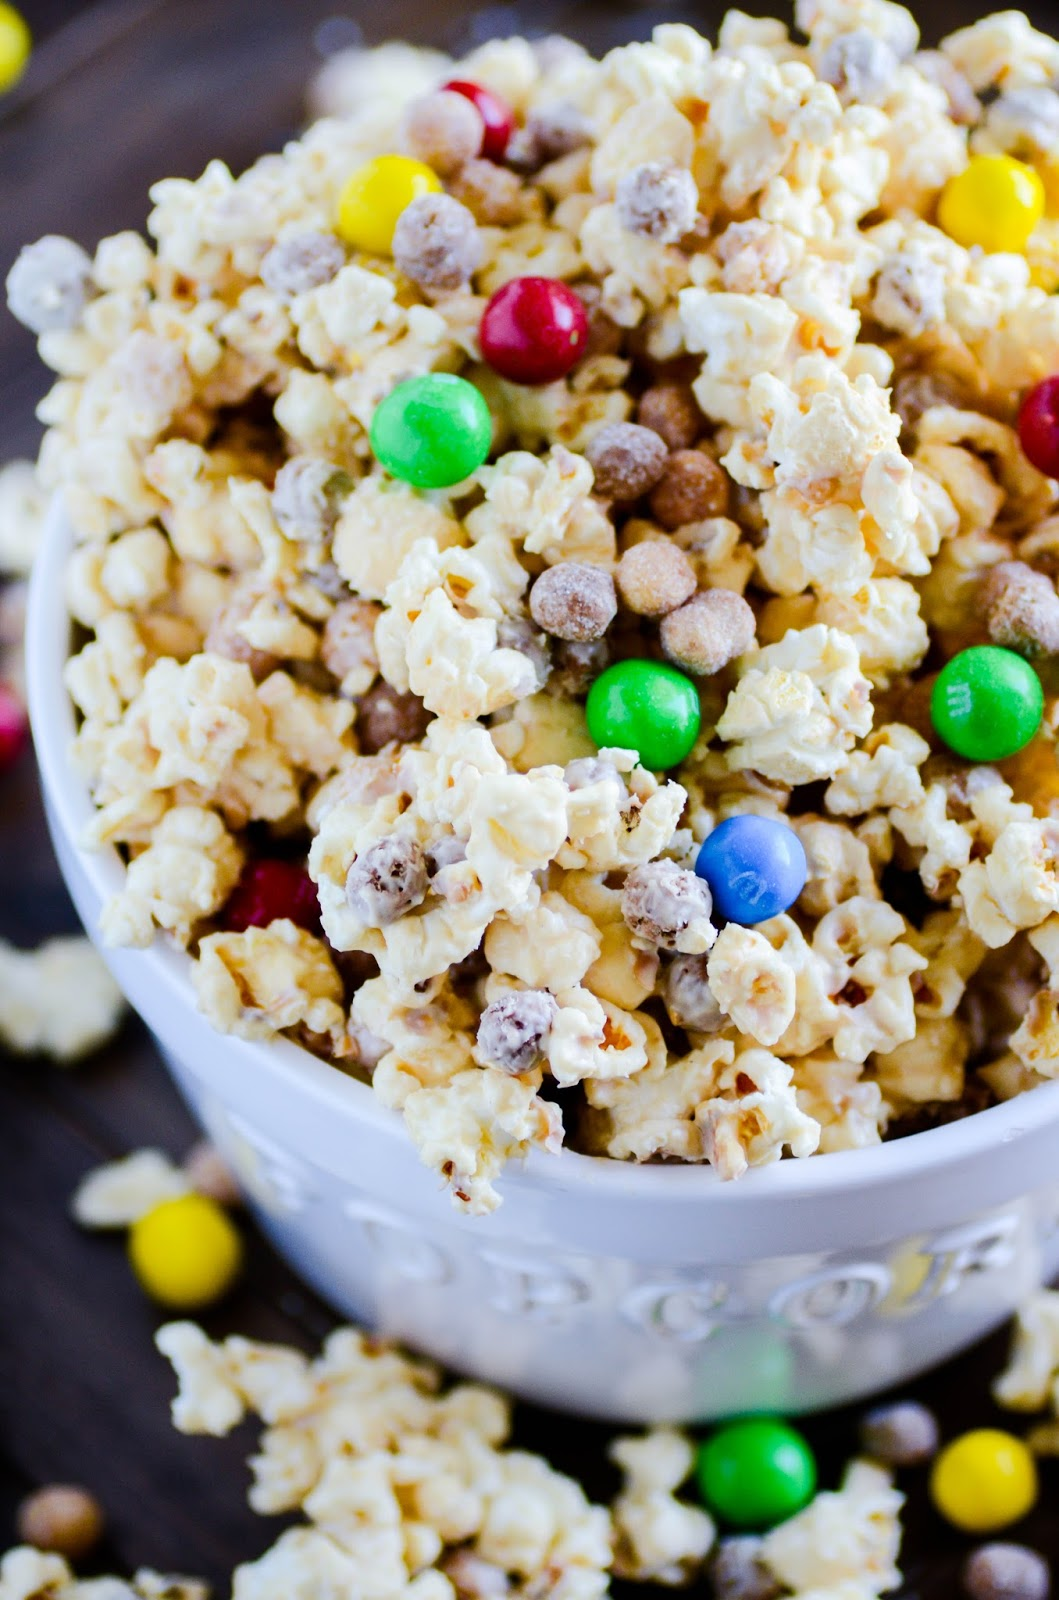 Crunchy, creamy, sweet and peanut butter-y snack mix filled with Reese's Puffs, kettle corn, and Pretzel M&Ms. Ready in under 30 minutes, and you won't be able to put it down!